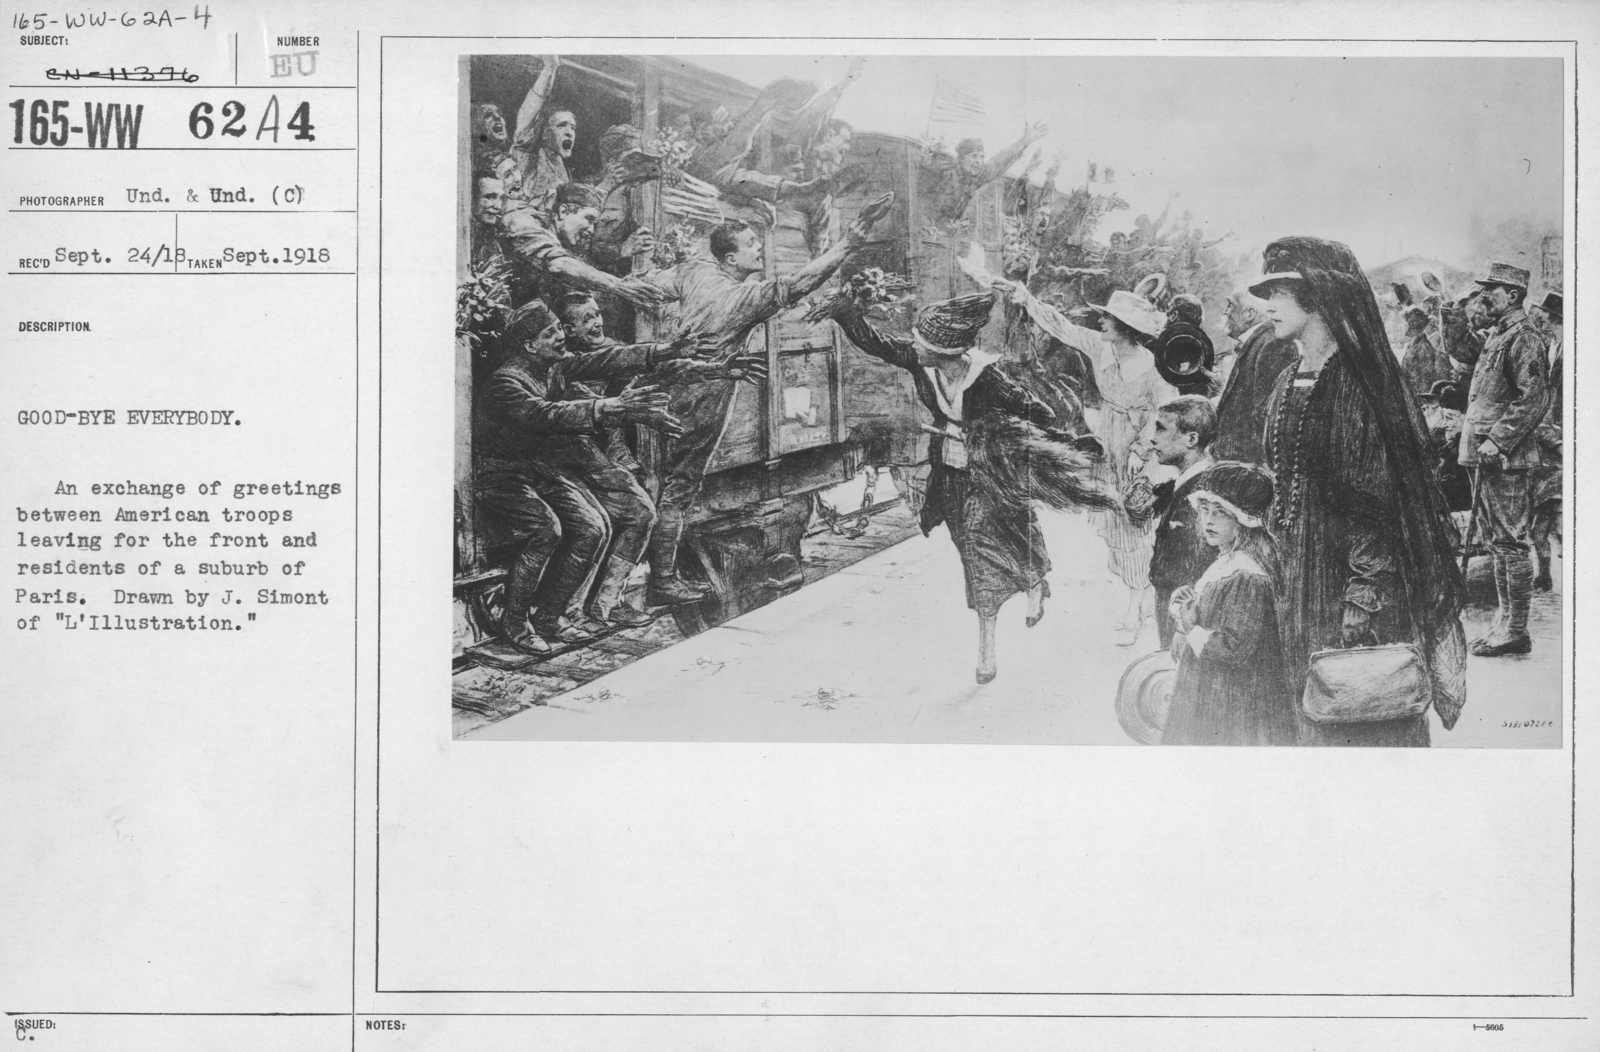 """Artists - American Artworks (Wartime Cartoons) - Good-bye Everybody. An exchange of greetings between American troops leaving for the front and residents of a suburb of Paris. Drawn by J. Simont of """"L'Illustration."""""""